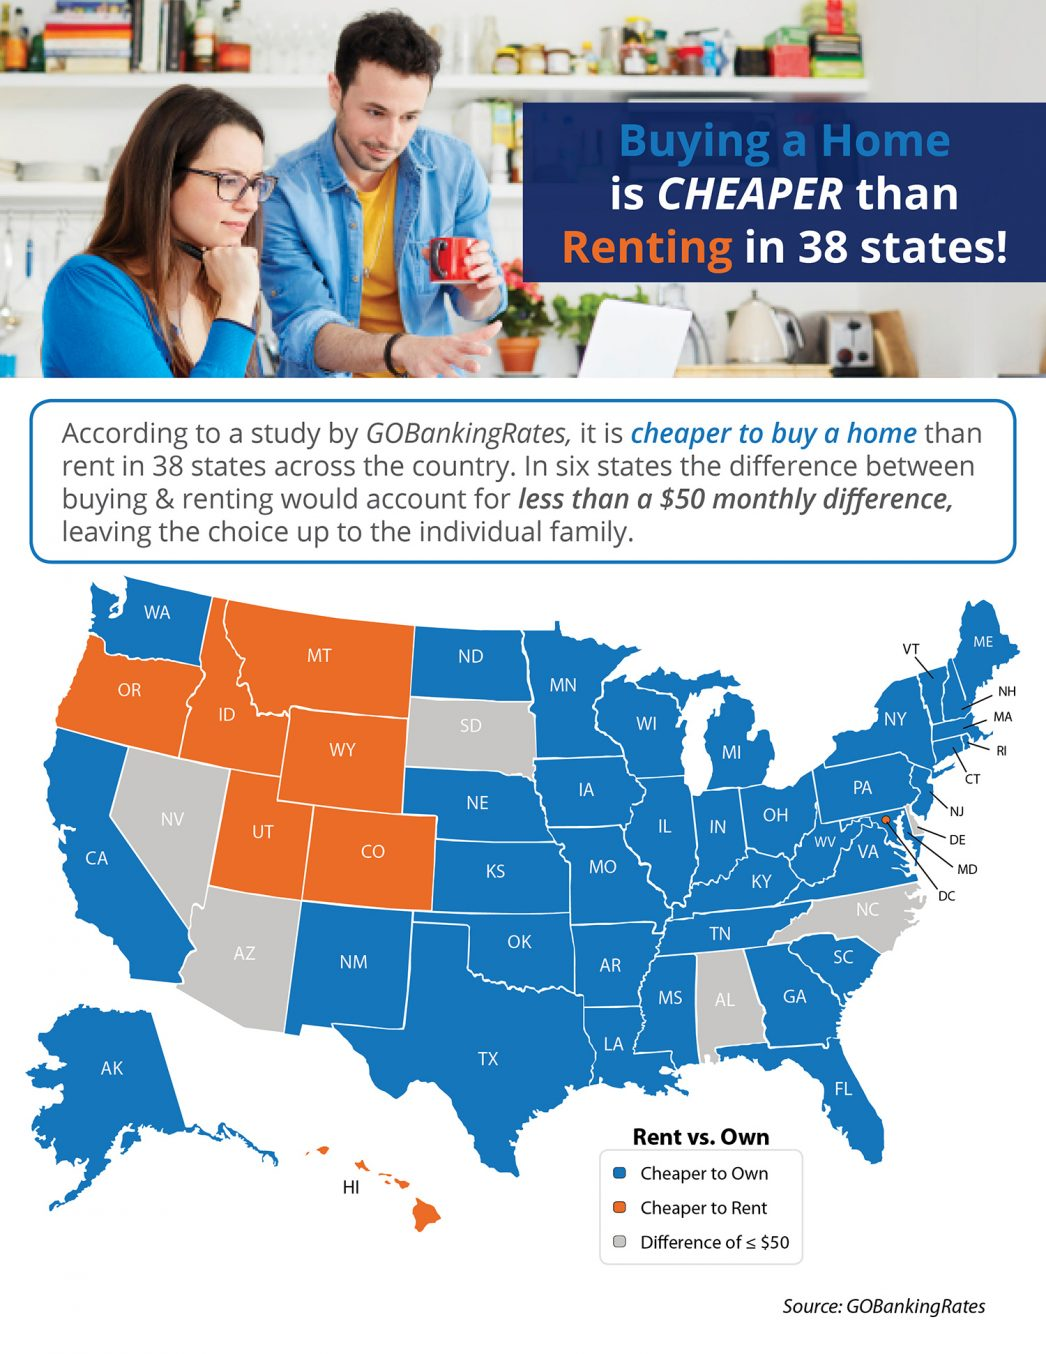 Buying a Home is Cheaper than Renting in 38 States.jpg